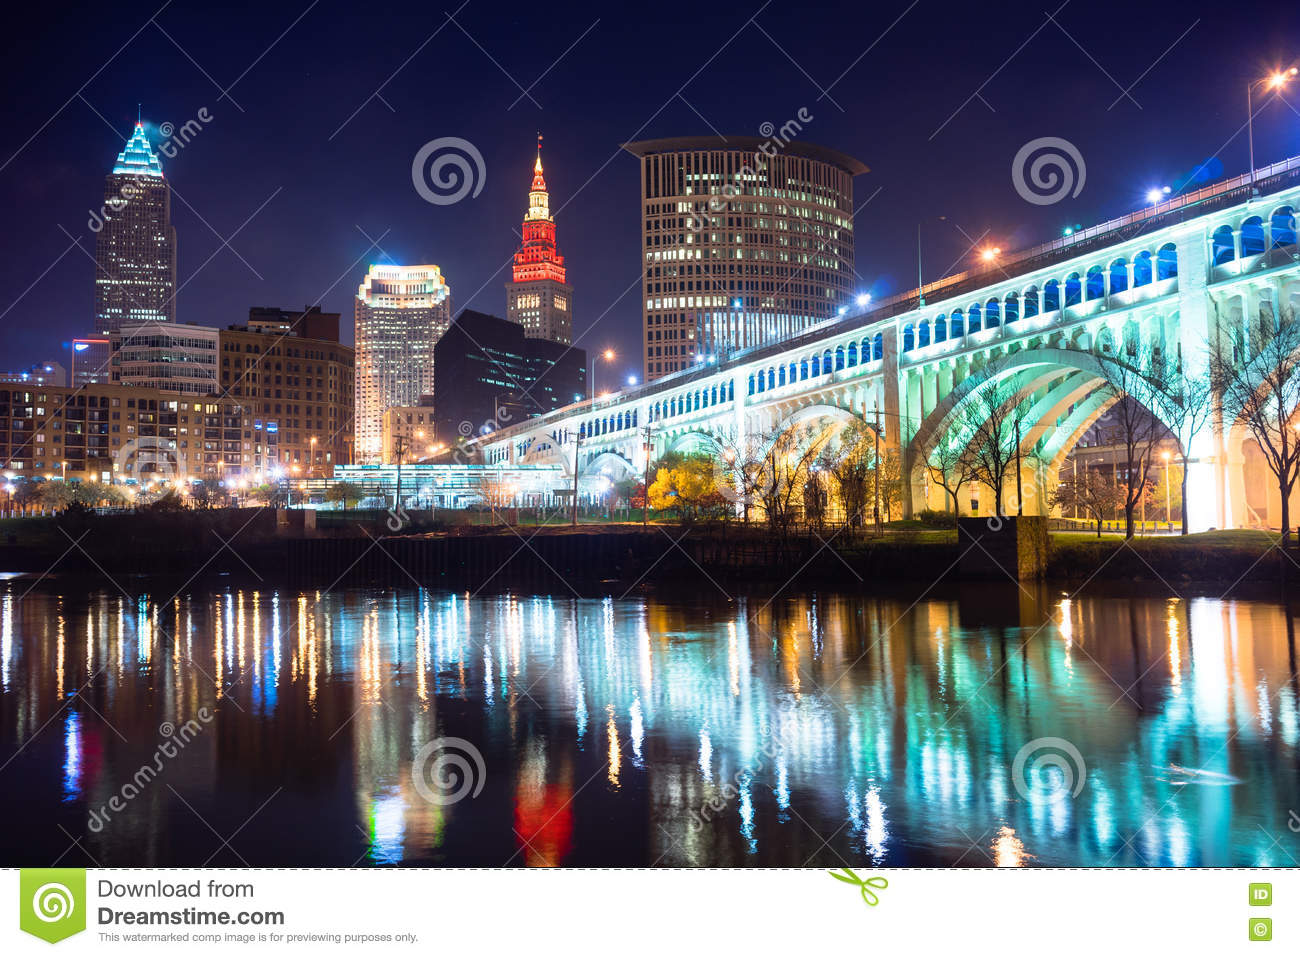 Cleveland Ohio Downtown City Skyline Cuyahoga River Royalty Free Stock  Photos. Downtown Cleveland Ohio Skyline Stock Photo   Image  9505970